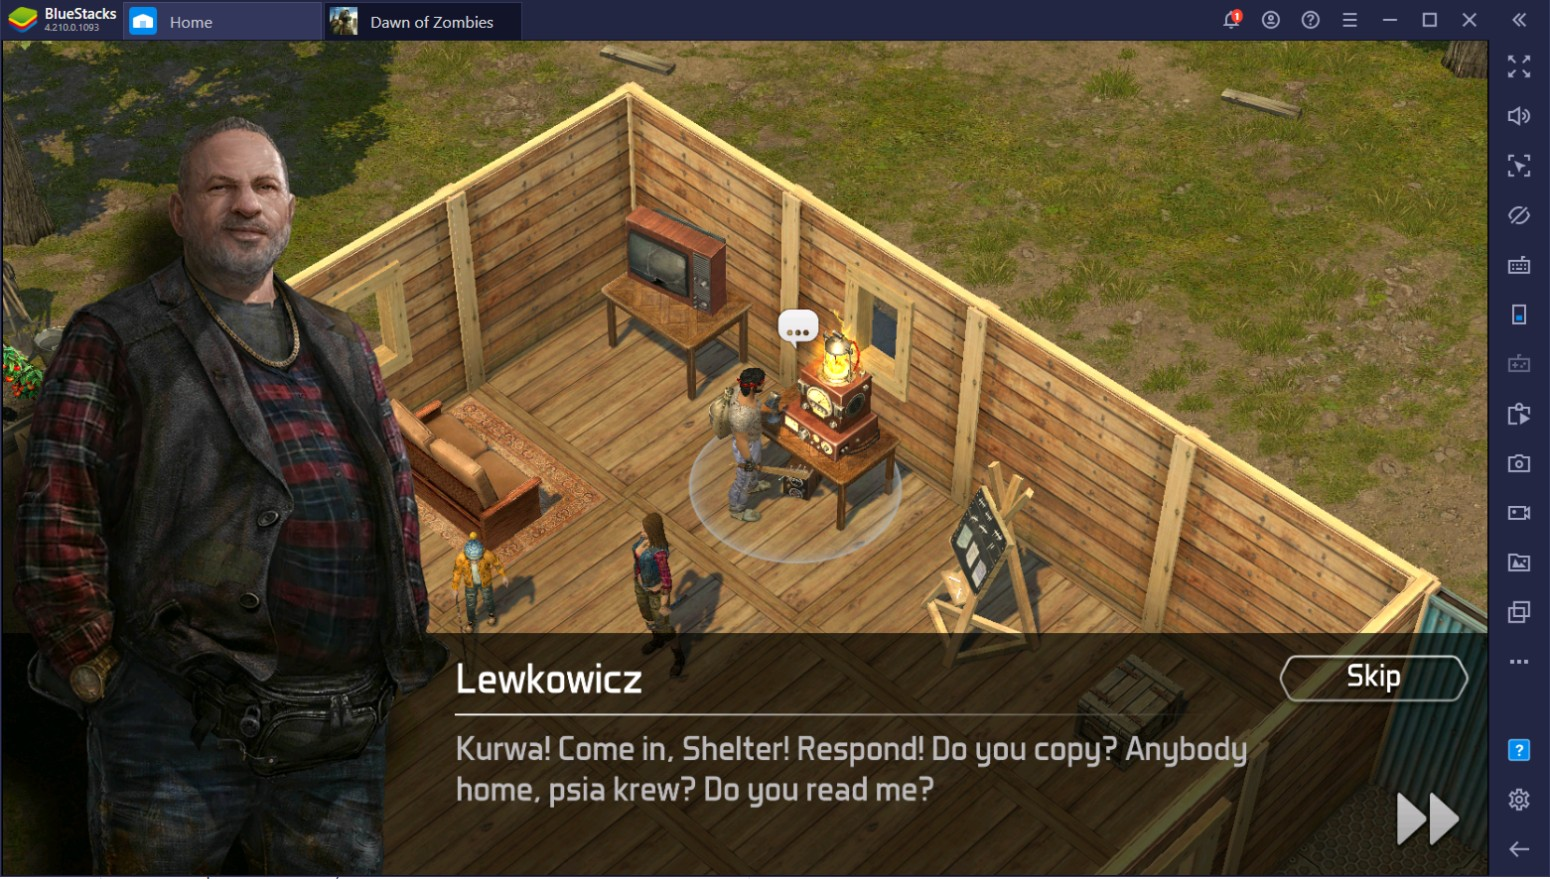 BlueStacks Guide To Playing Dawn of Zombies on PC